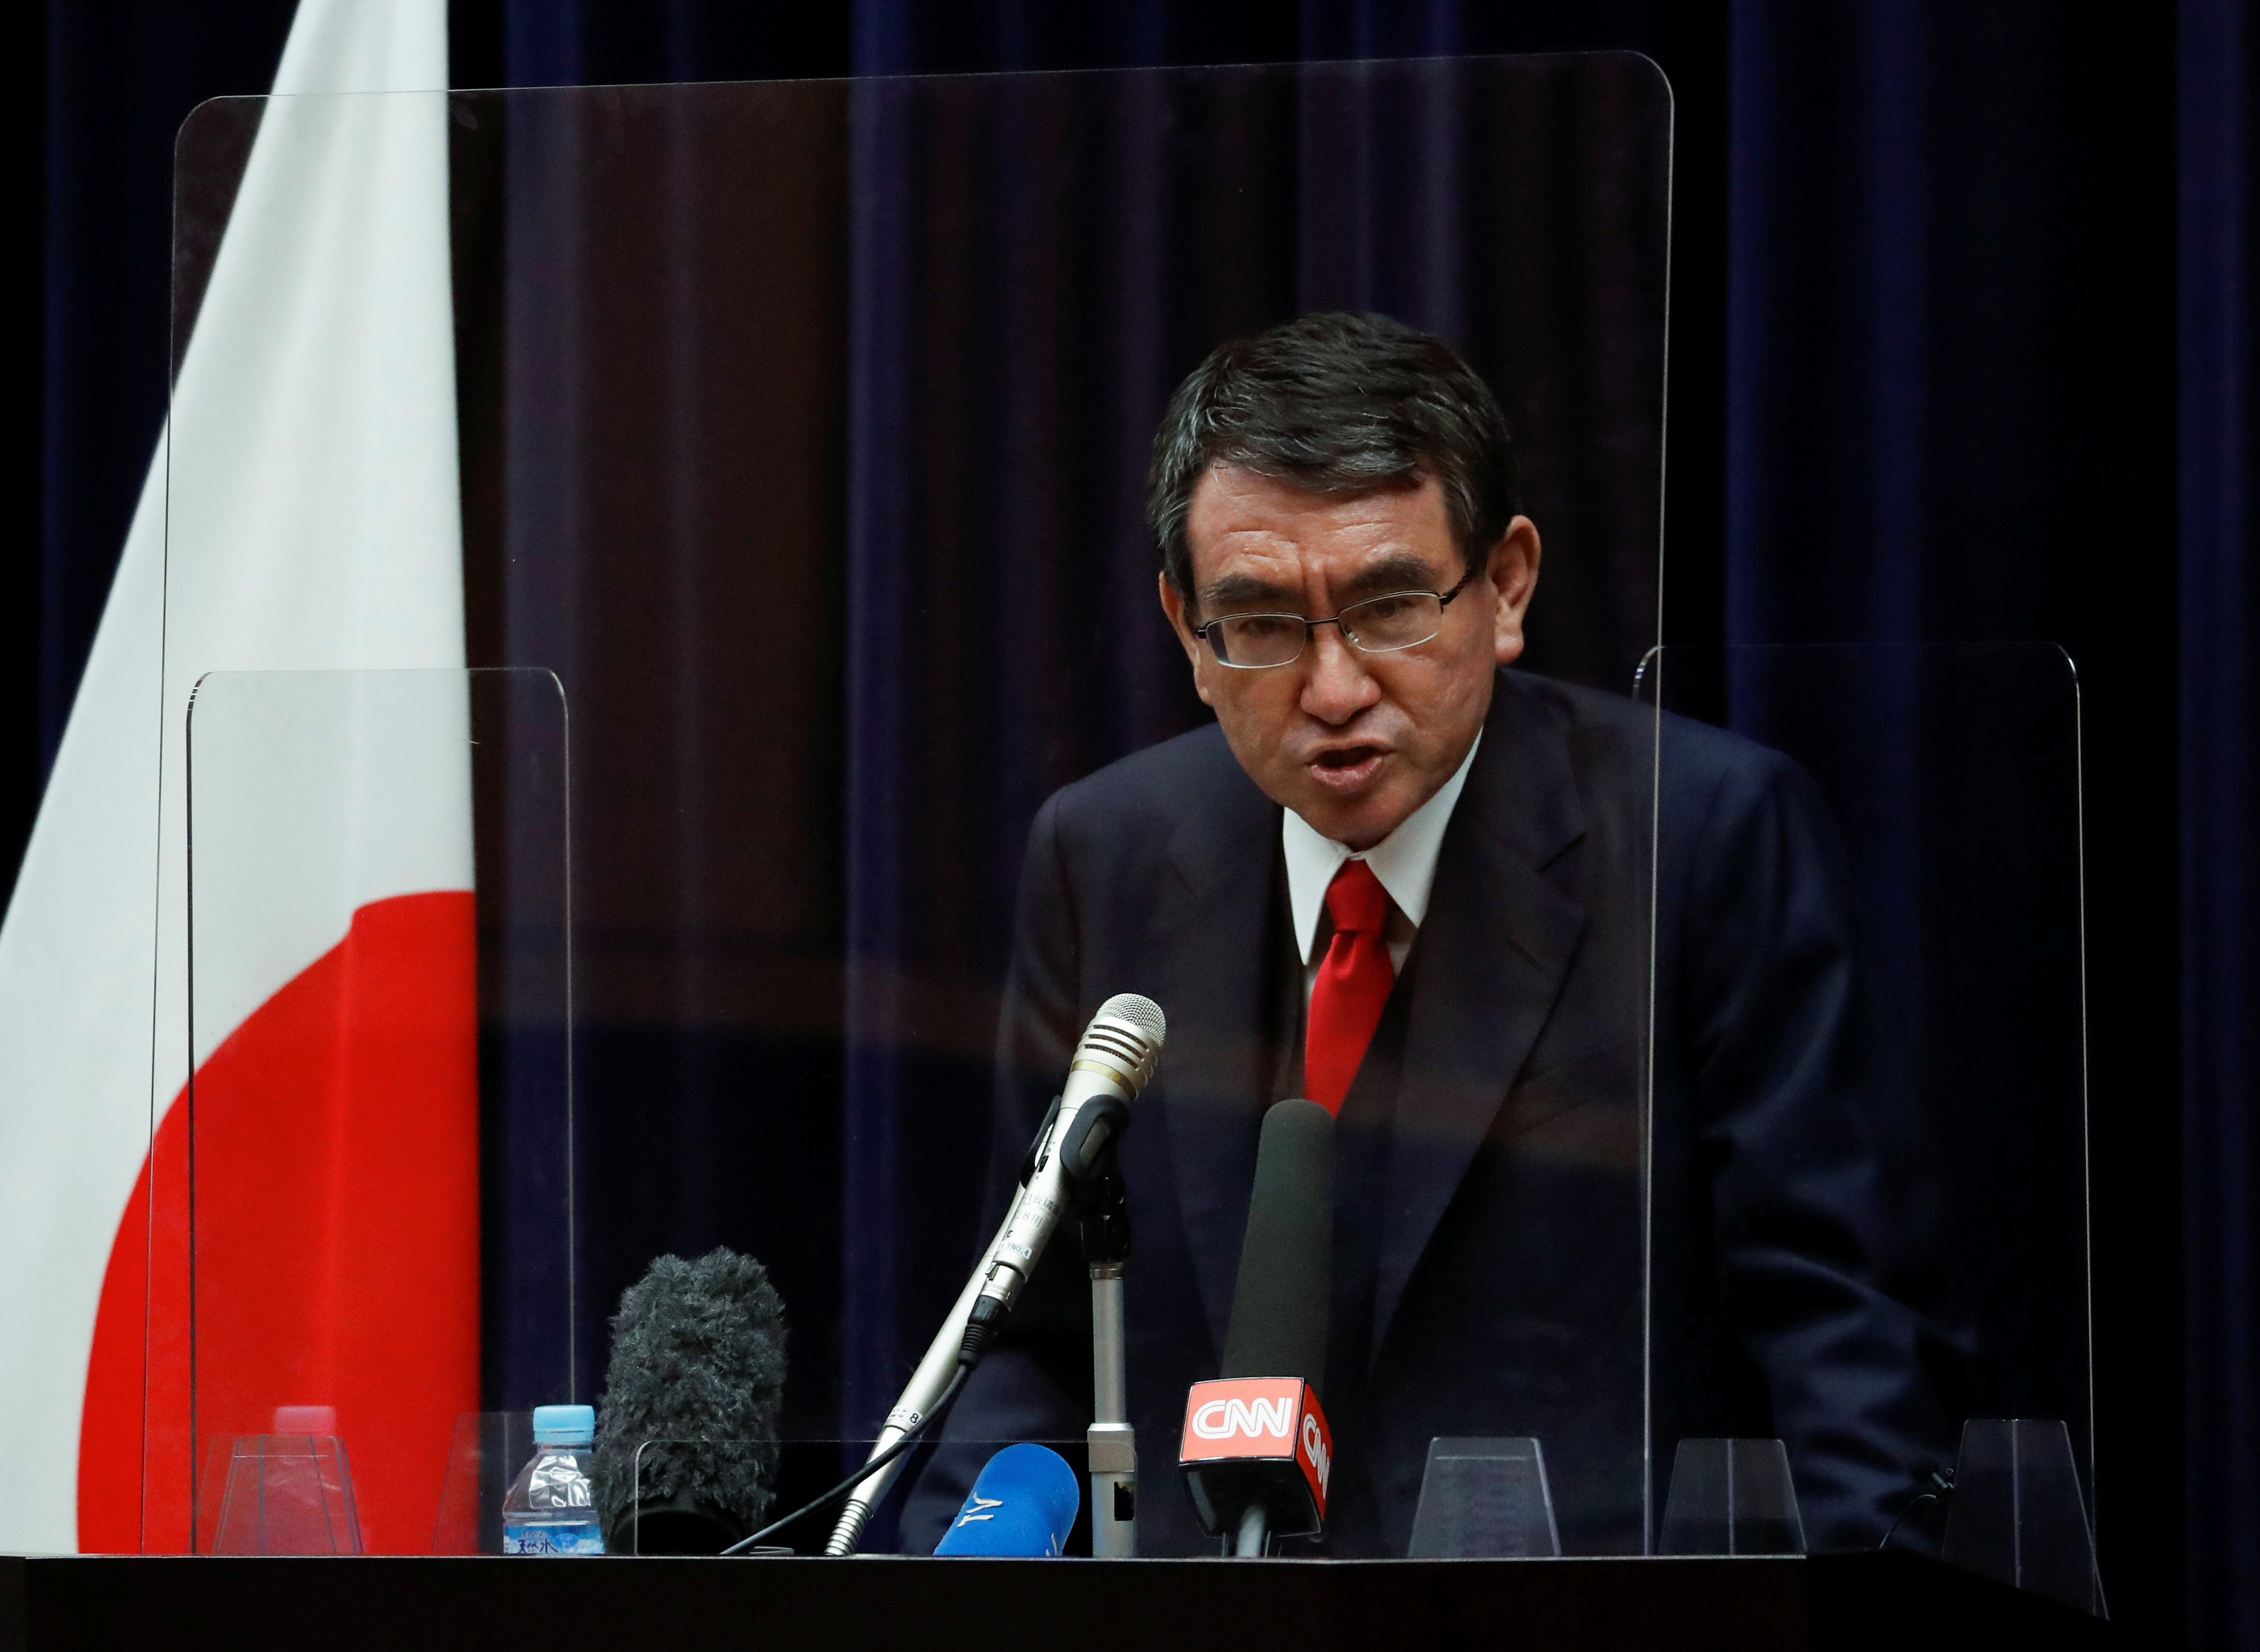 Japan's vaccination programme chief Taro Kono attends a news conference on the country's preparations to begin vaccinating health workers, amid the coronavirus disease (COVID-19) outbreak, in Tokyo, Japan February 16, 2021. REUTERS/Issei Kato